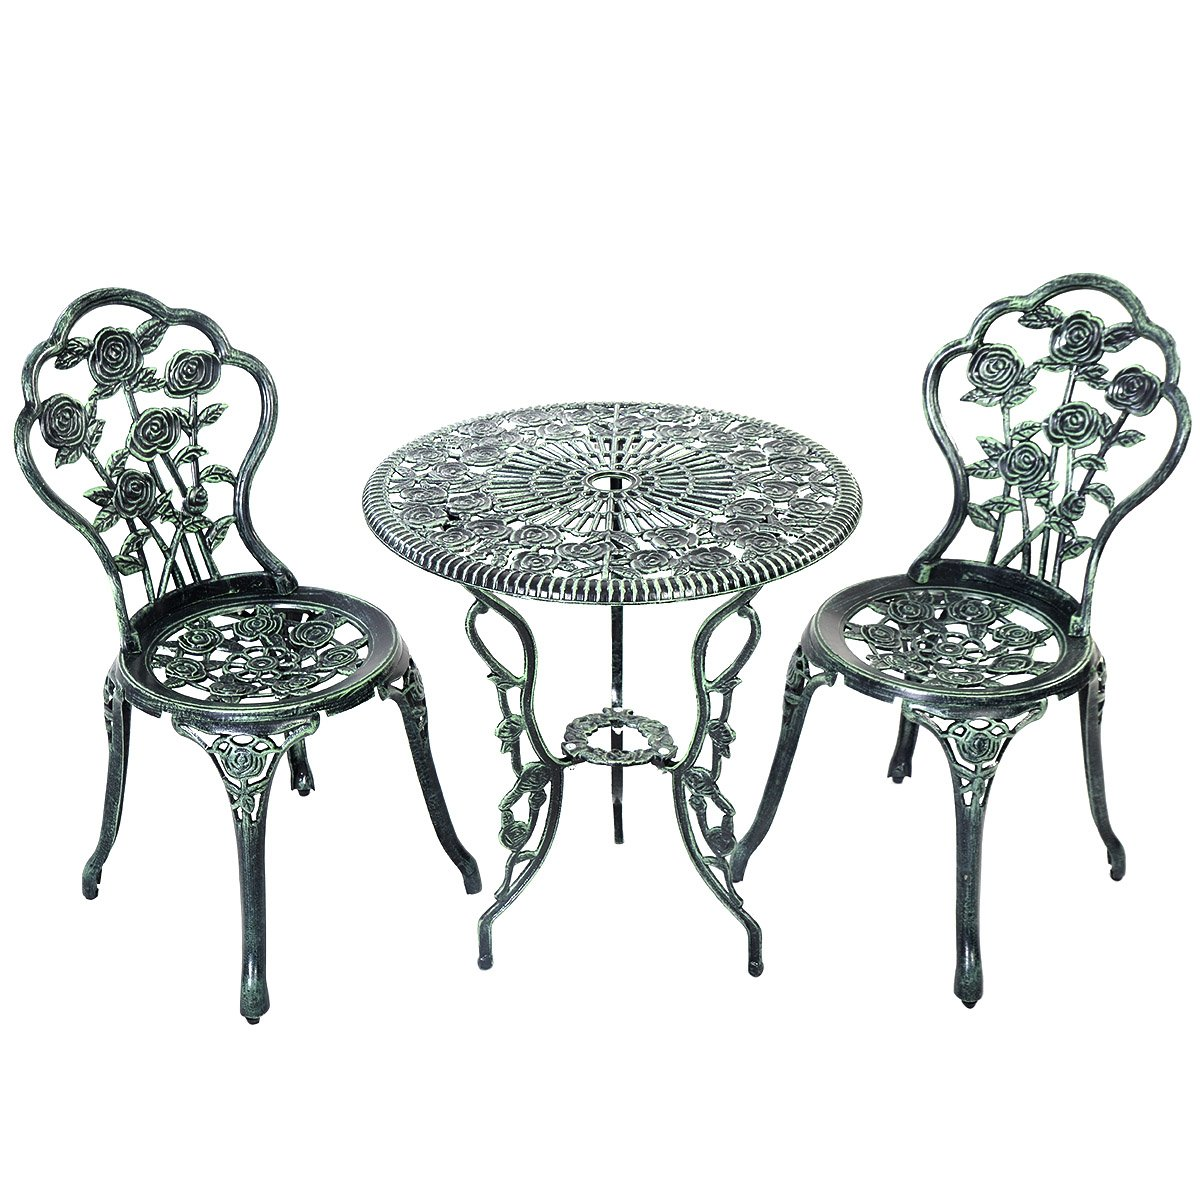 Cast Aluminum Patio Furniture Heart Pattern: Giantex Patio Furniture Cast Aluminum Rose Design Bistro